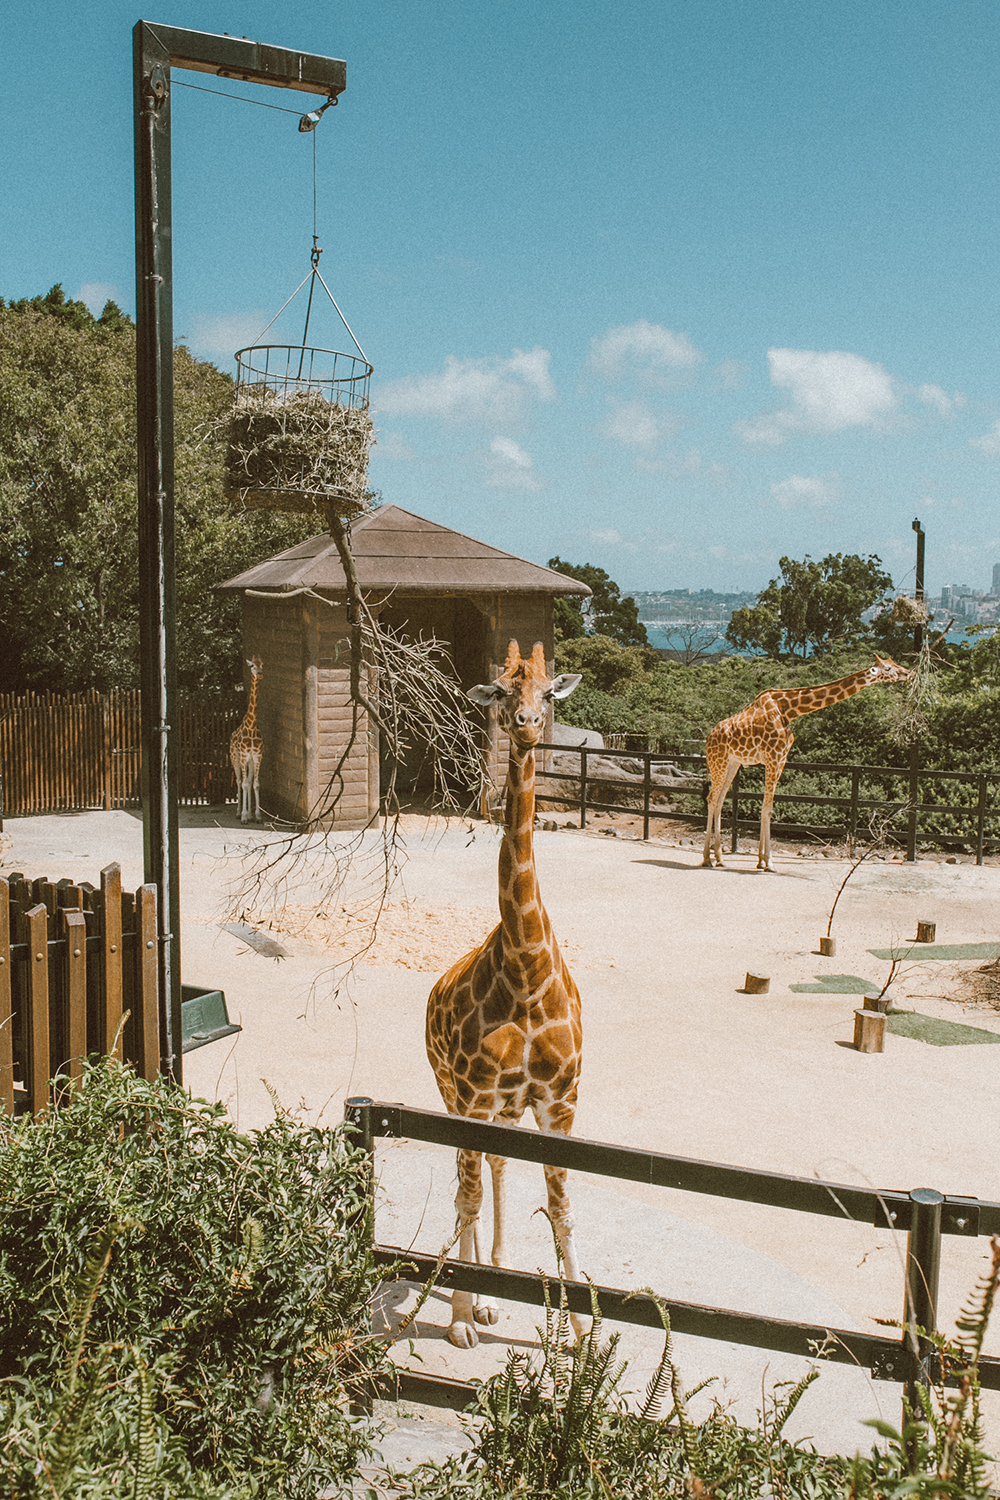 livvyland-blog-olivia-watson-austin-texas-fashion-travel-lifestyle-blogger-sydney-melbourne-australia-taronga-zoo-giraffes-1